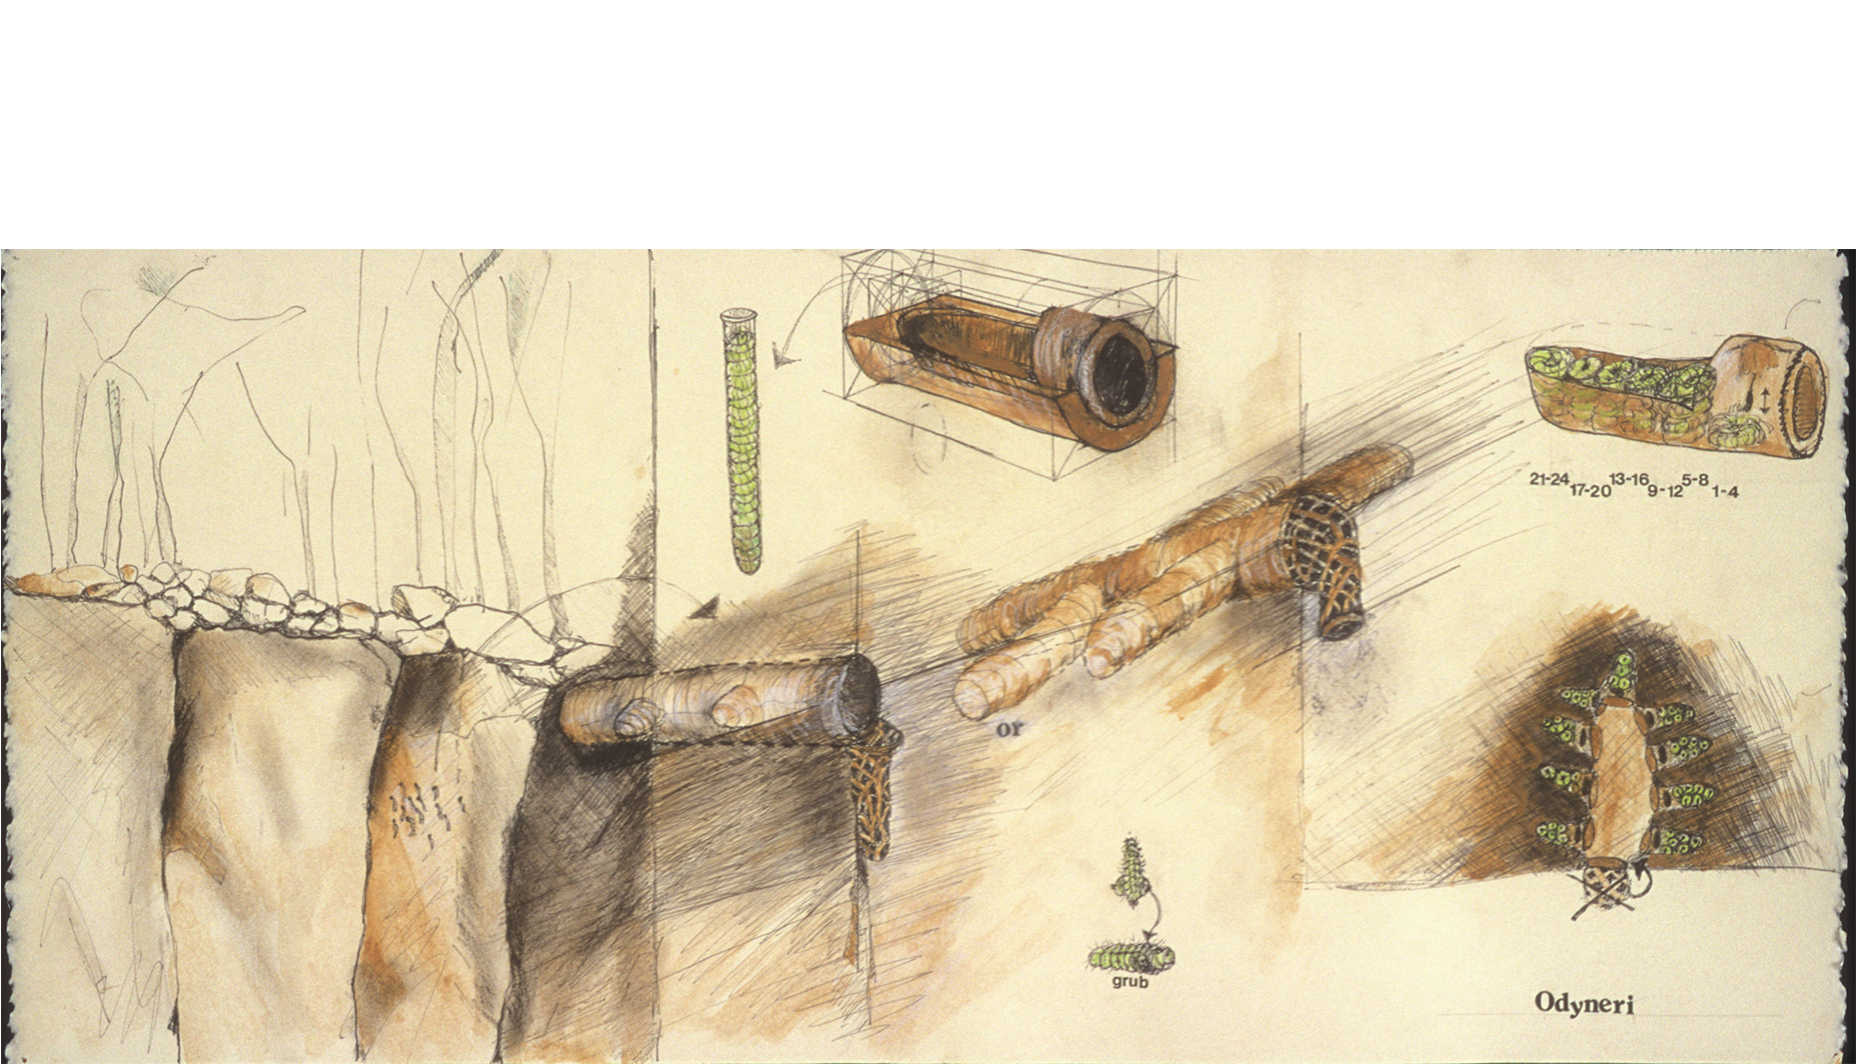 """Odyneri  from Henri Fabre's  The Mason Wasp , 1999  Mixed media on paper, 10 x 22""""."""